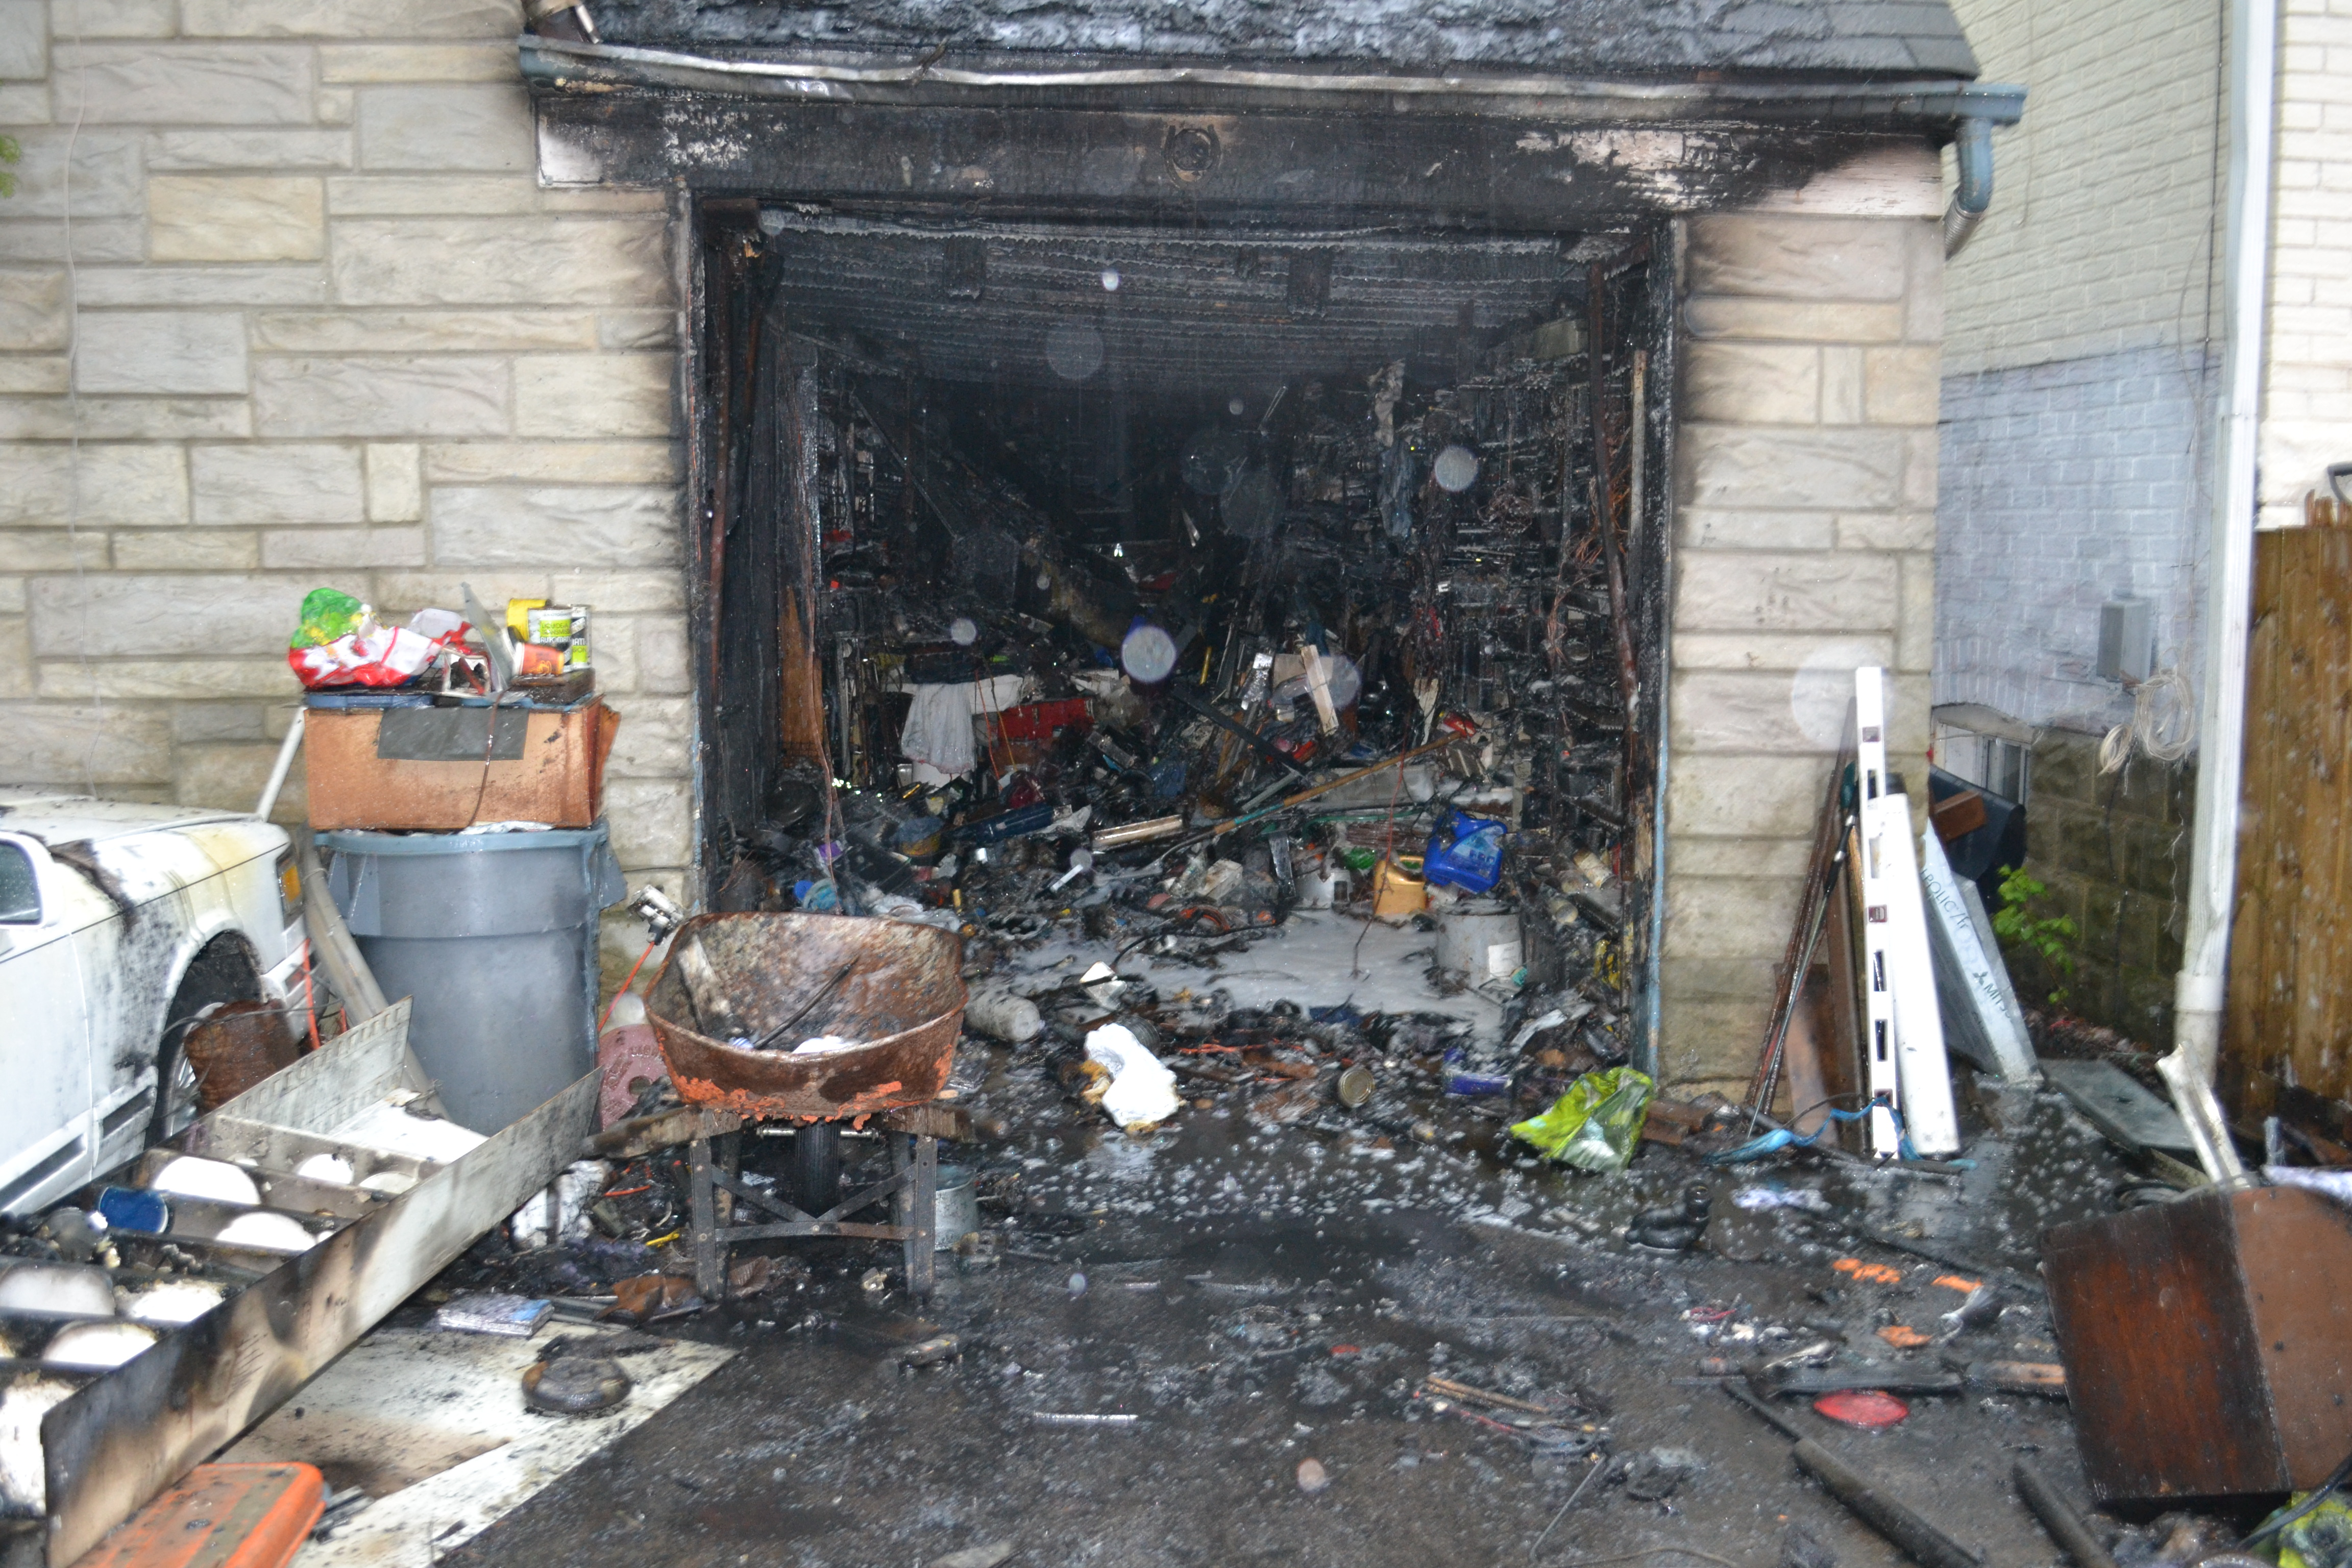 fire at house of hoarders birch cliff news birch cliff news. Black Bedroom Furniture Sets. Home Design Ideas